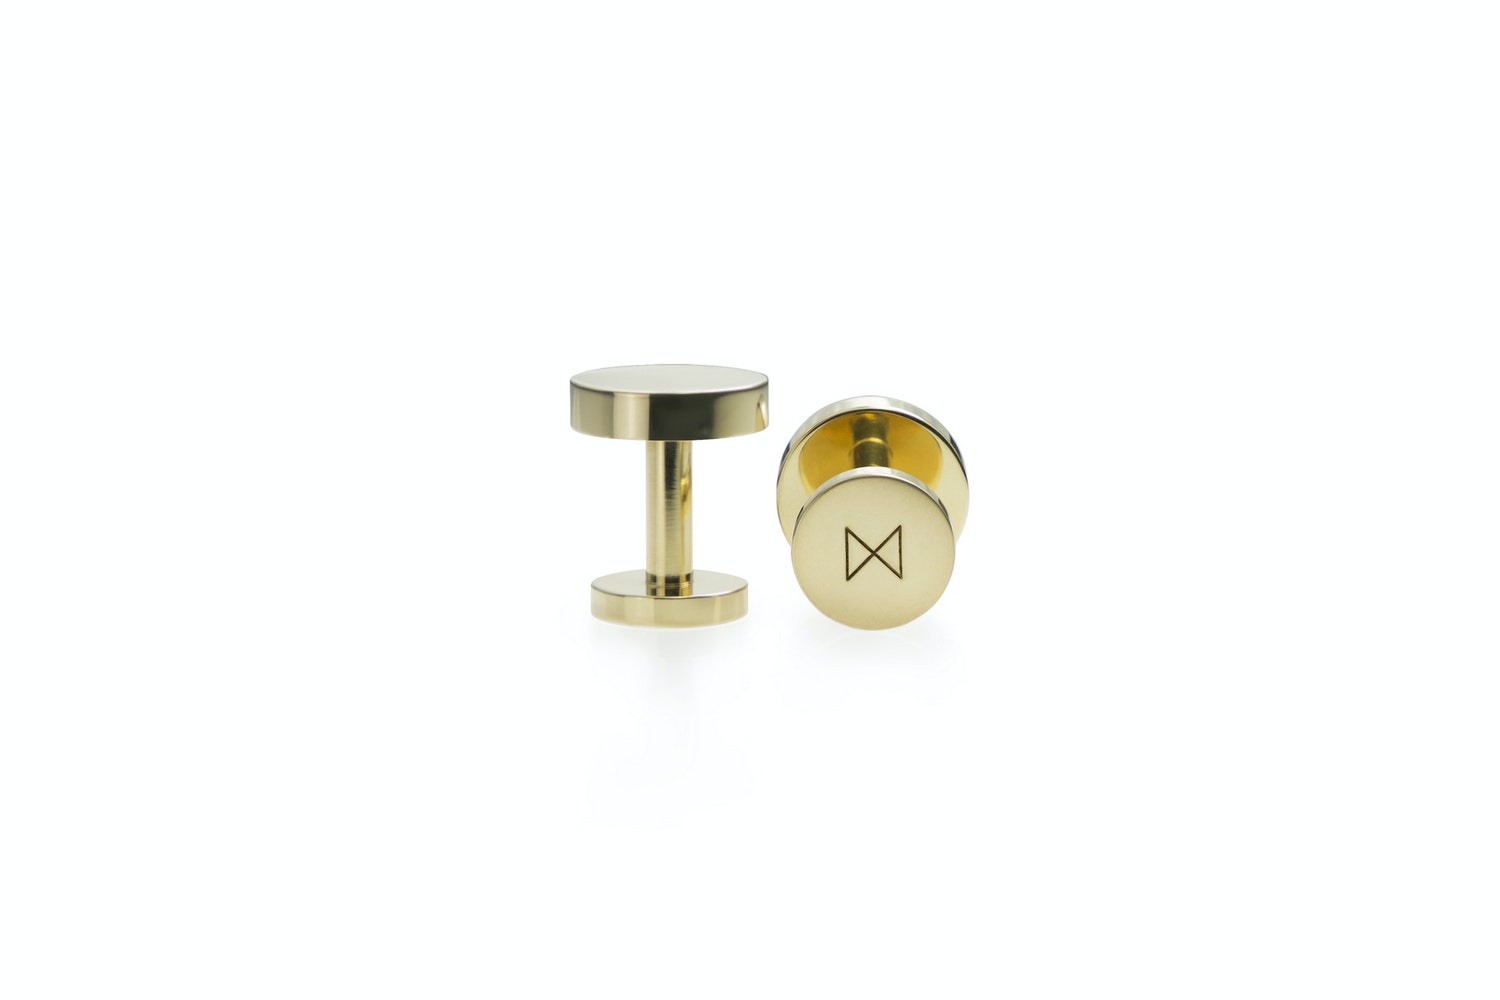 Cufflinks - Polished Brass by Alice Made This for Minimalux